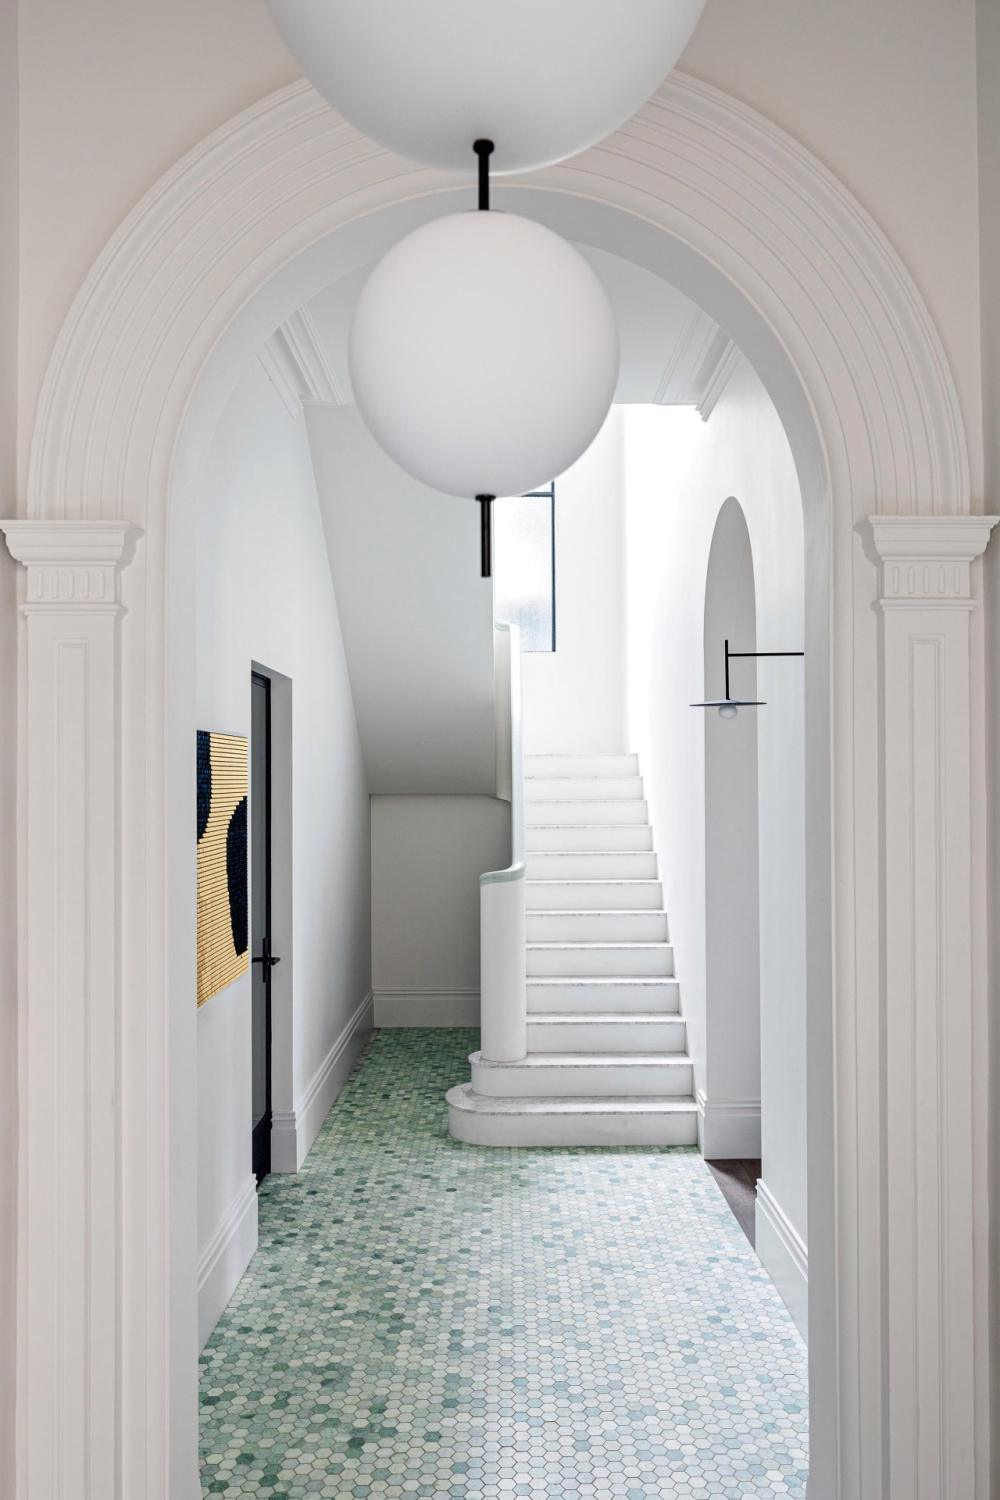 House tour: an elegant heritage Melbourne home restored with a moody colour palette-1.jpg